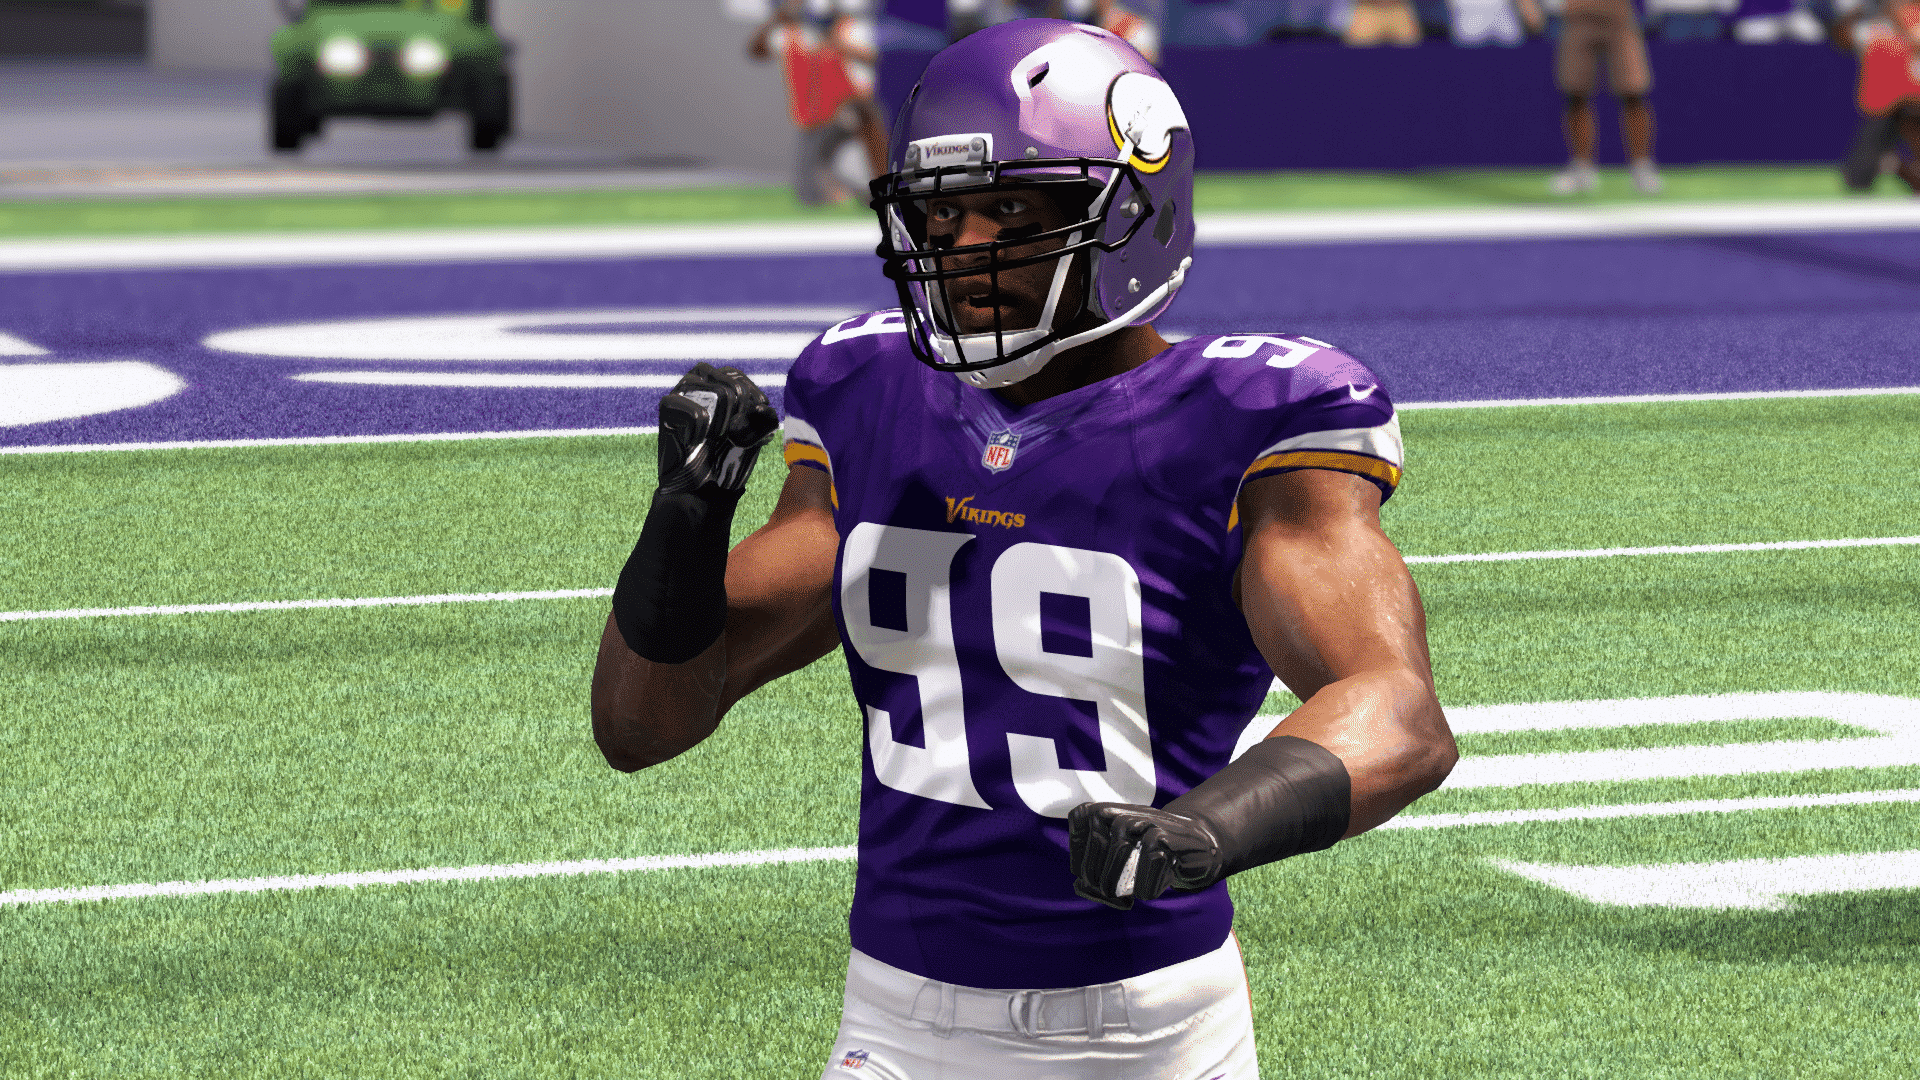 Madden Ultimate Team Gets Salary Cap Update Sports Gamers line